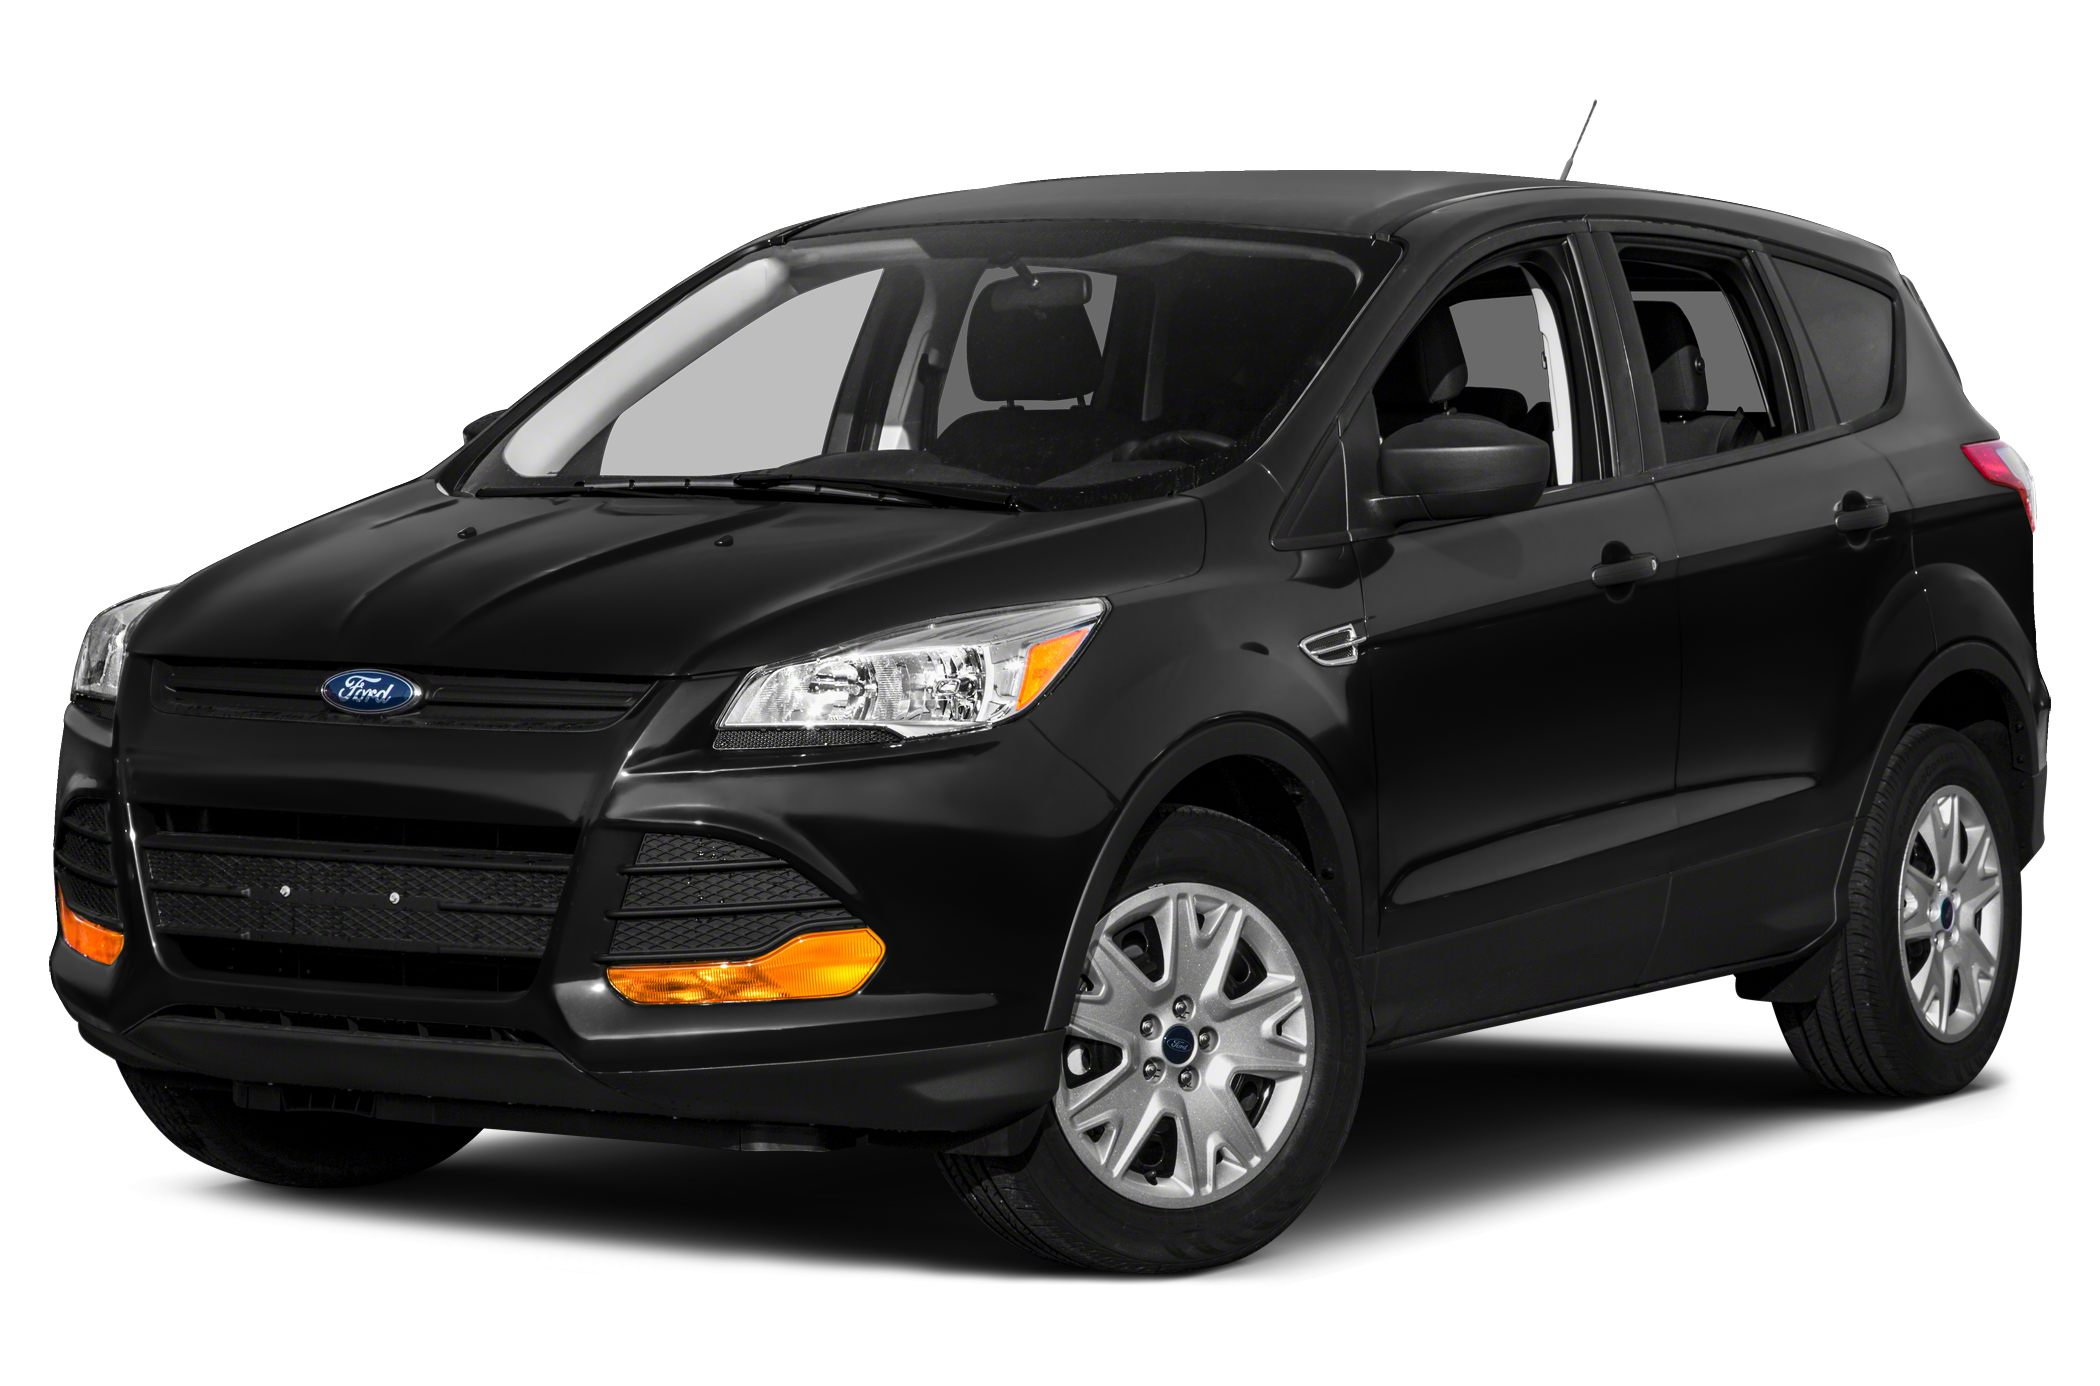 2013 Ford Escape Owner Reviews and Ratings